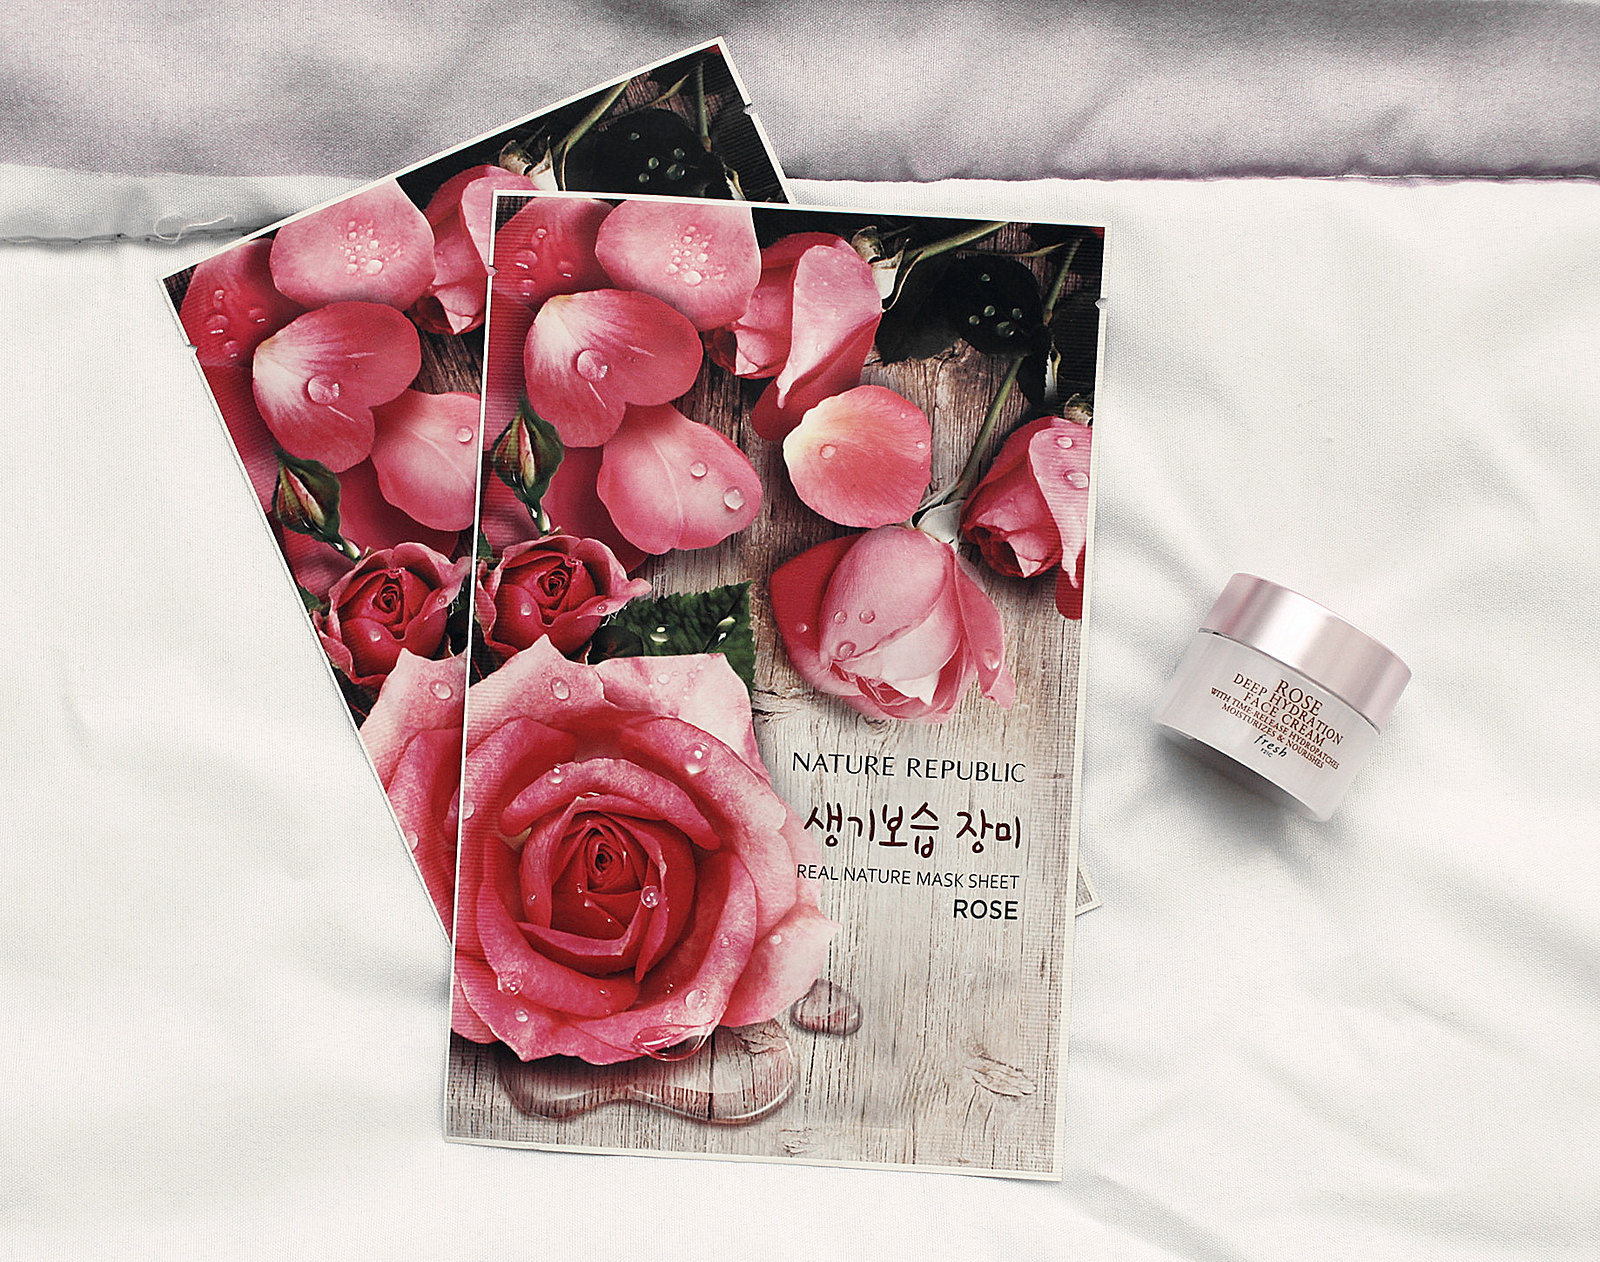 3421-nature-republic-sheetmasks-rose-beauty-lifestyle-elizabeeetht-clothestoyouuu-flatlay